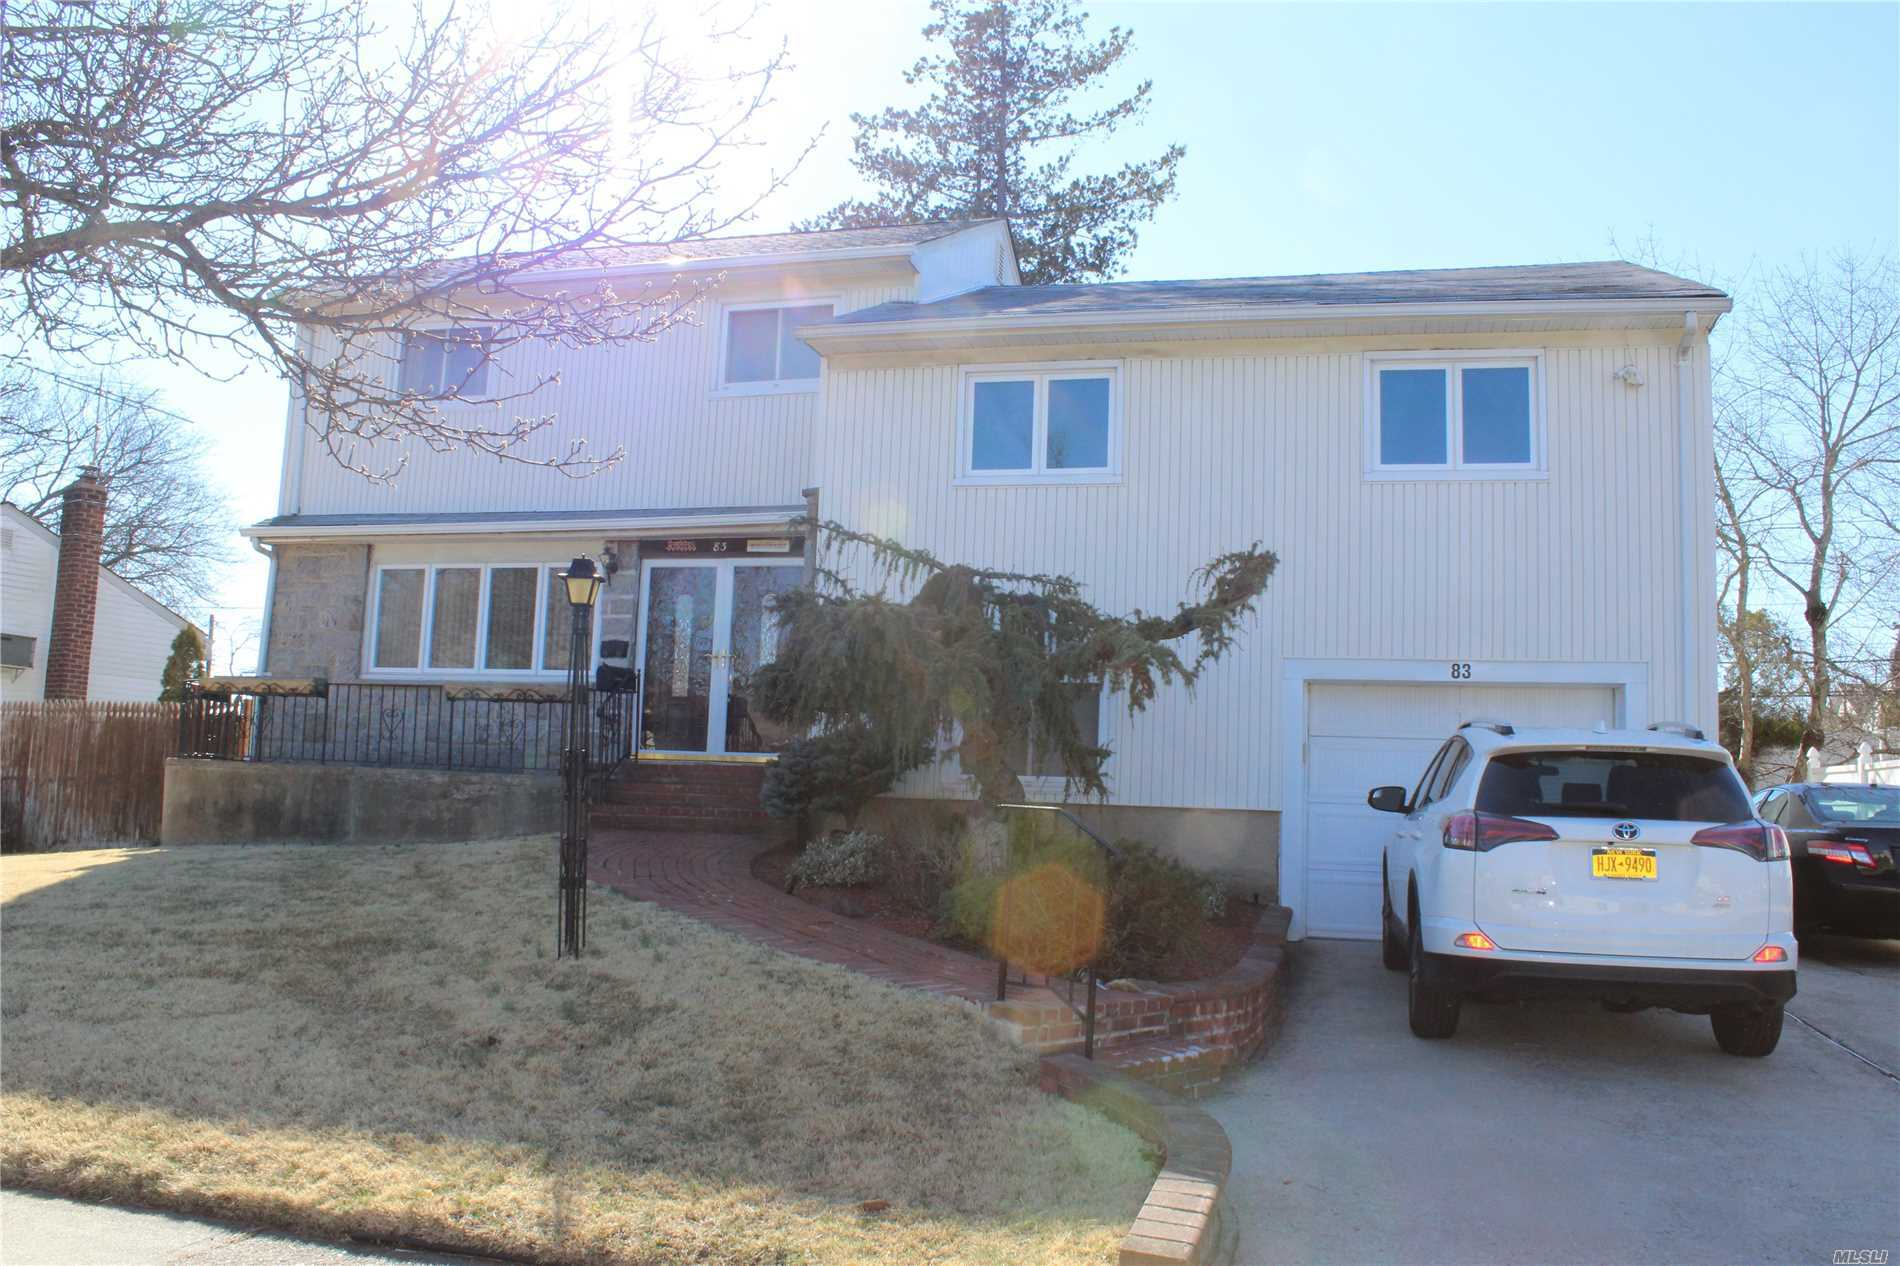 Lovely Mid Block Large 5 Bedroom 3 Bath Split W/Granite Kitchen And Ss Appl. Wood Floors Through Out Most Of The Home/Separate Office And Finished Basement. Dining Room W/Sliding Doors Leading To Deck. New Roof, New Boiler Great Home Must See!